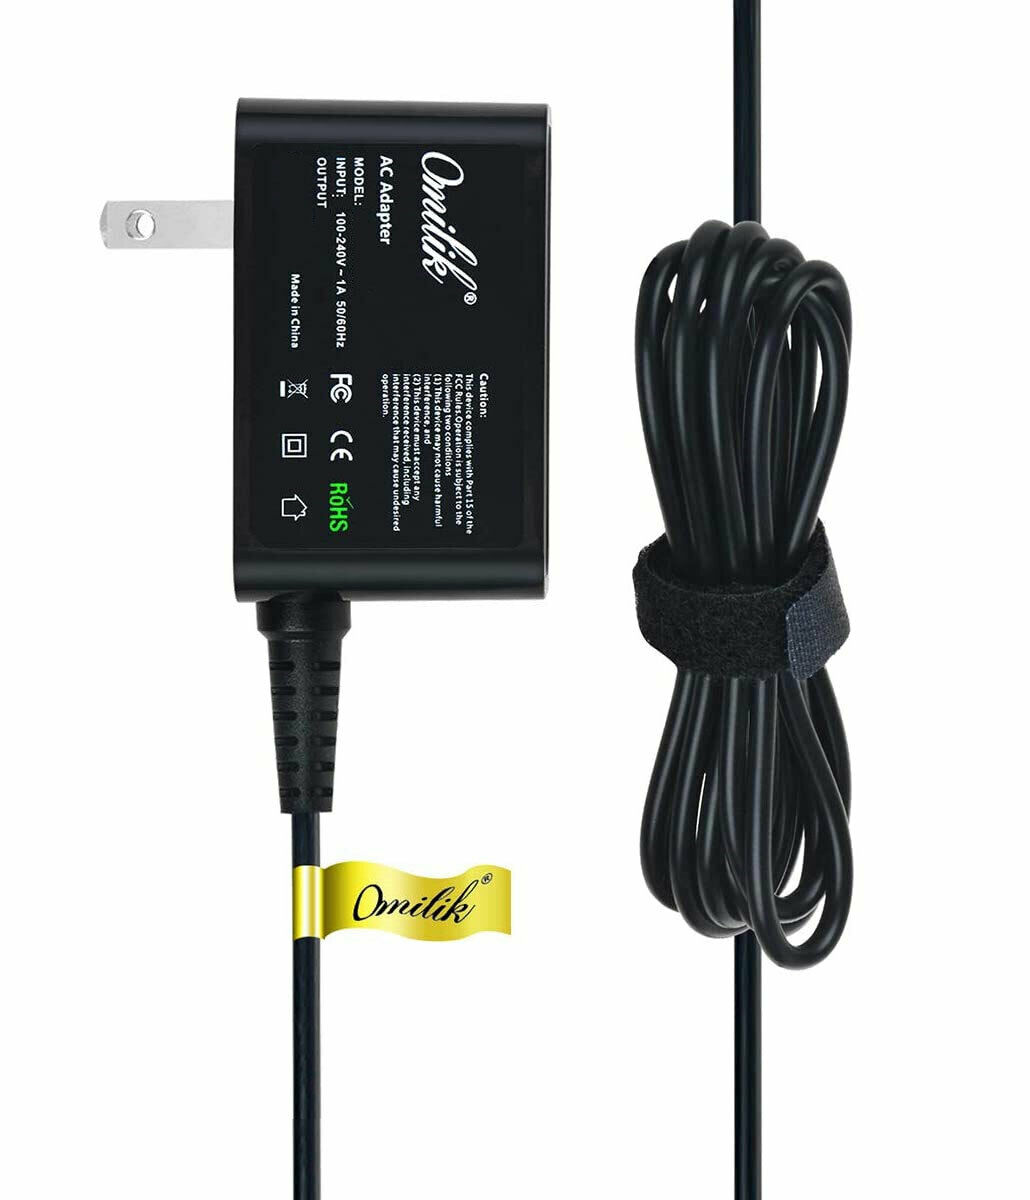 OmiLik AC Adapter for Craftsman 7.2v DC Pivoting Screwdriver/3/8 in Drill Power